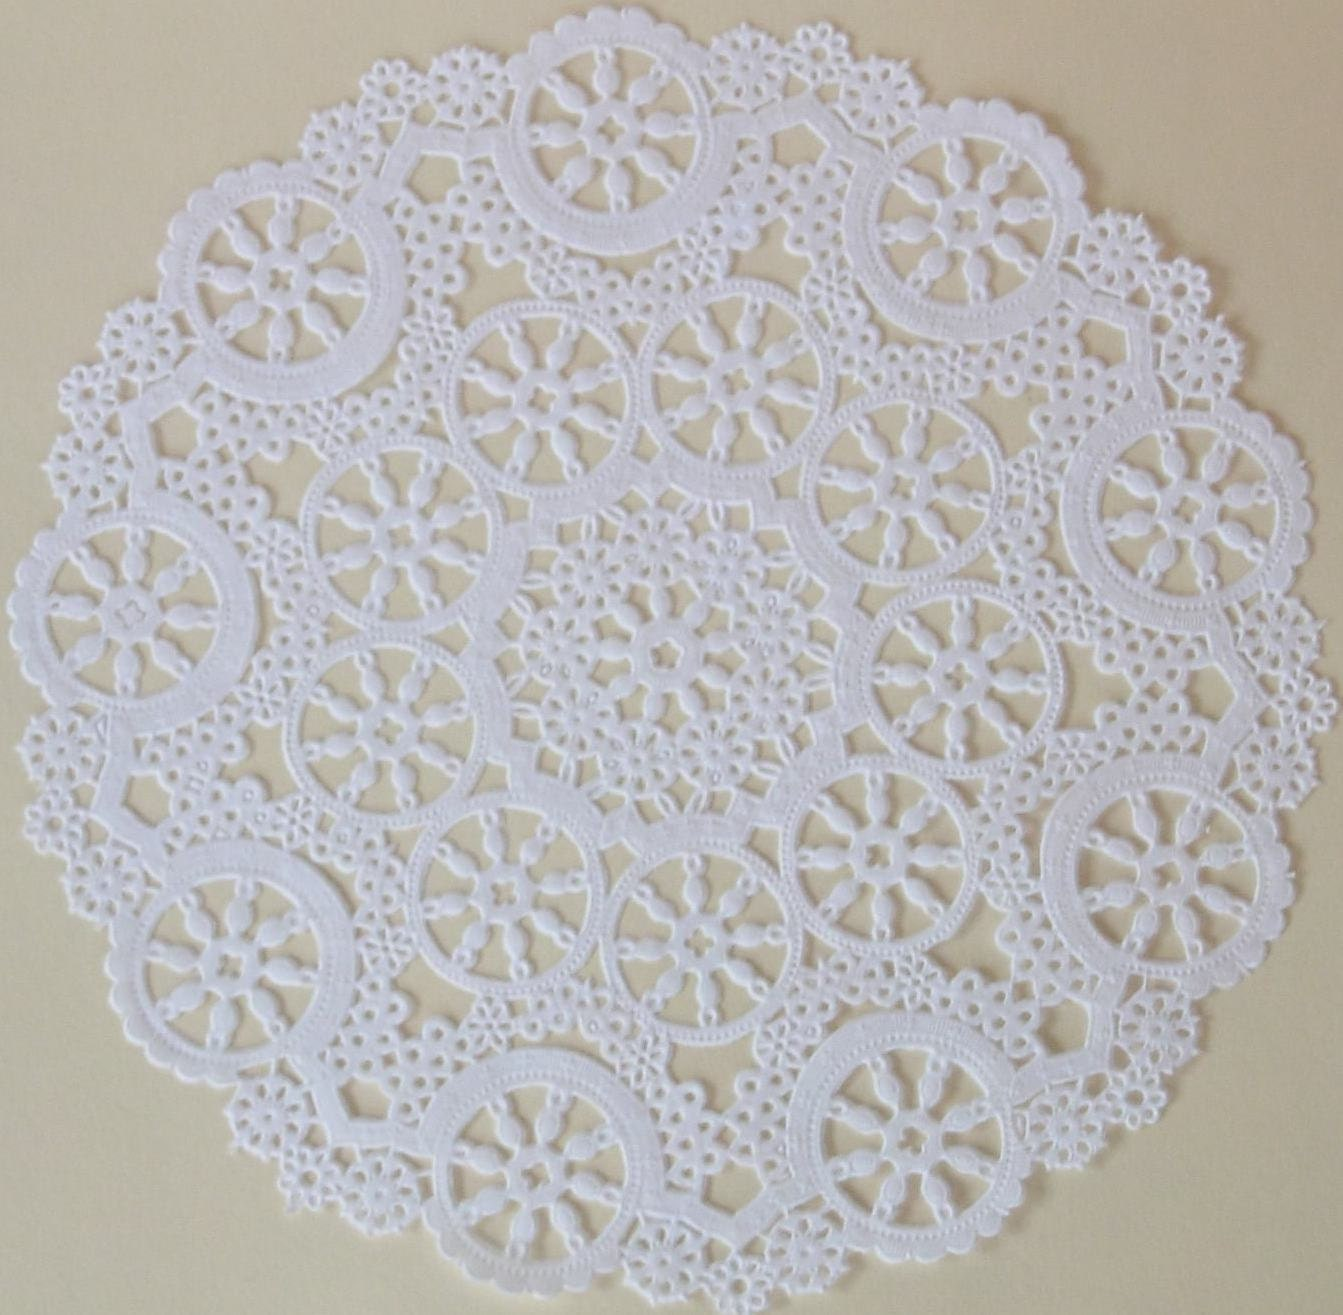 paper doilies for sale If you're searching for assorted paper doilies, check out our massive selection available at paper mart today for low prices and high-quality products.